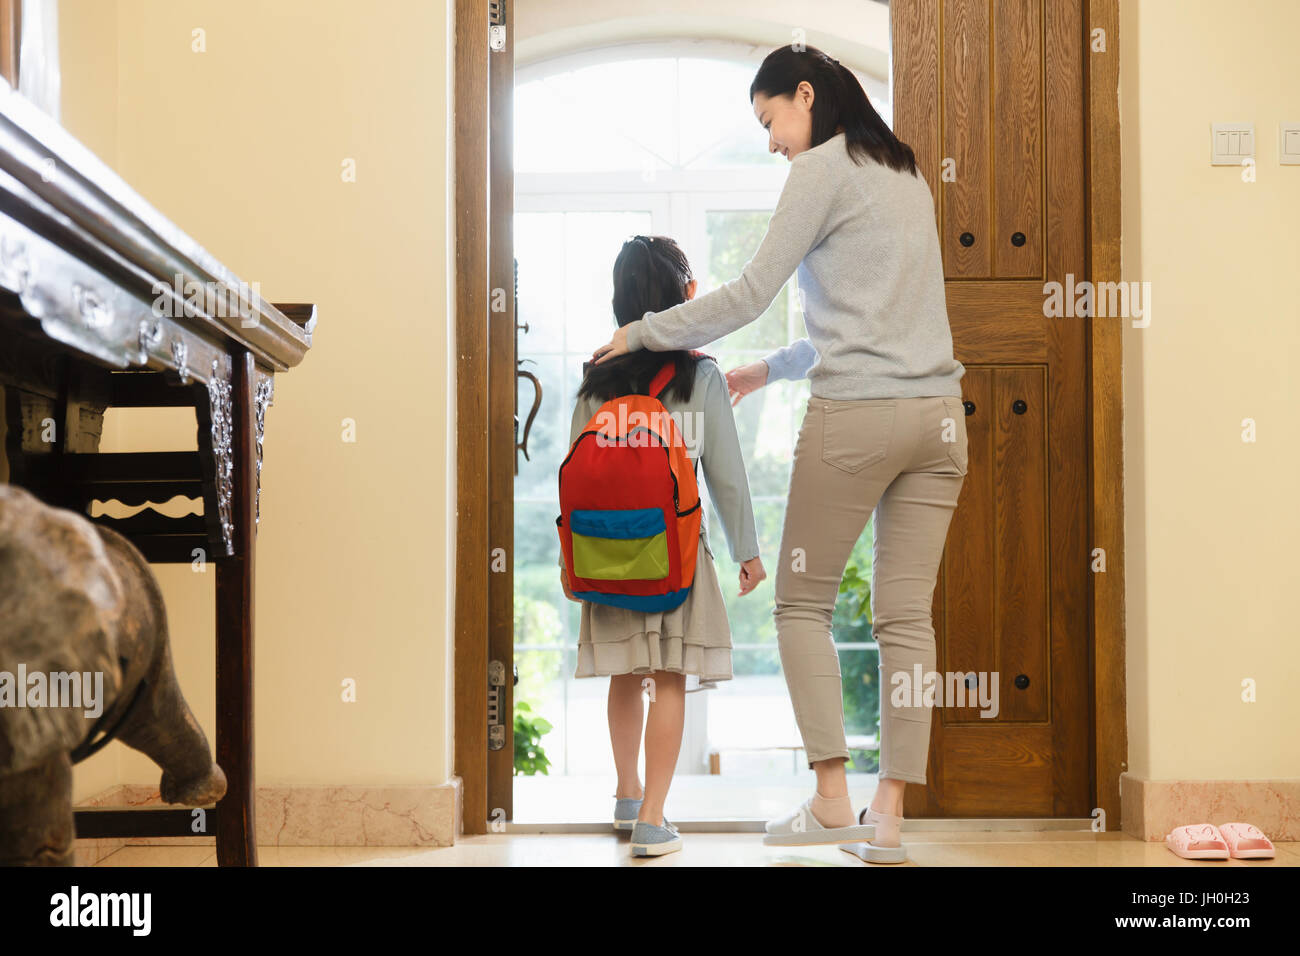 Daughter and mother at home - Stock Image